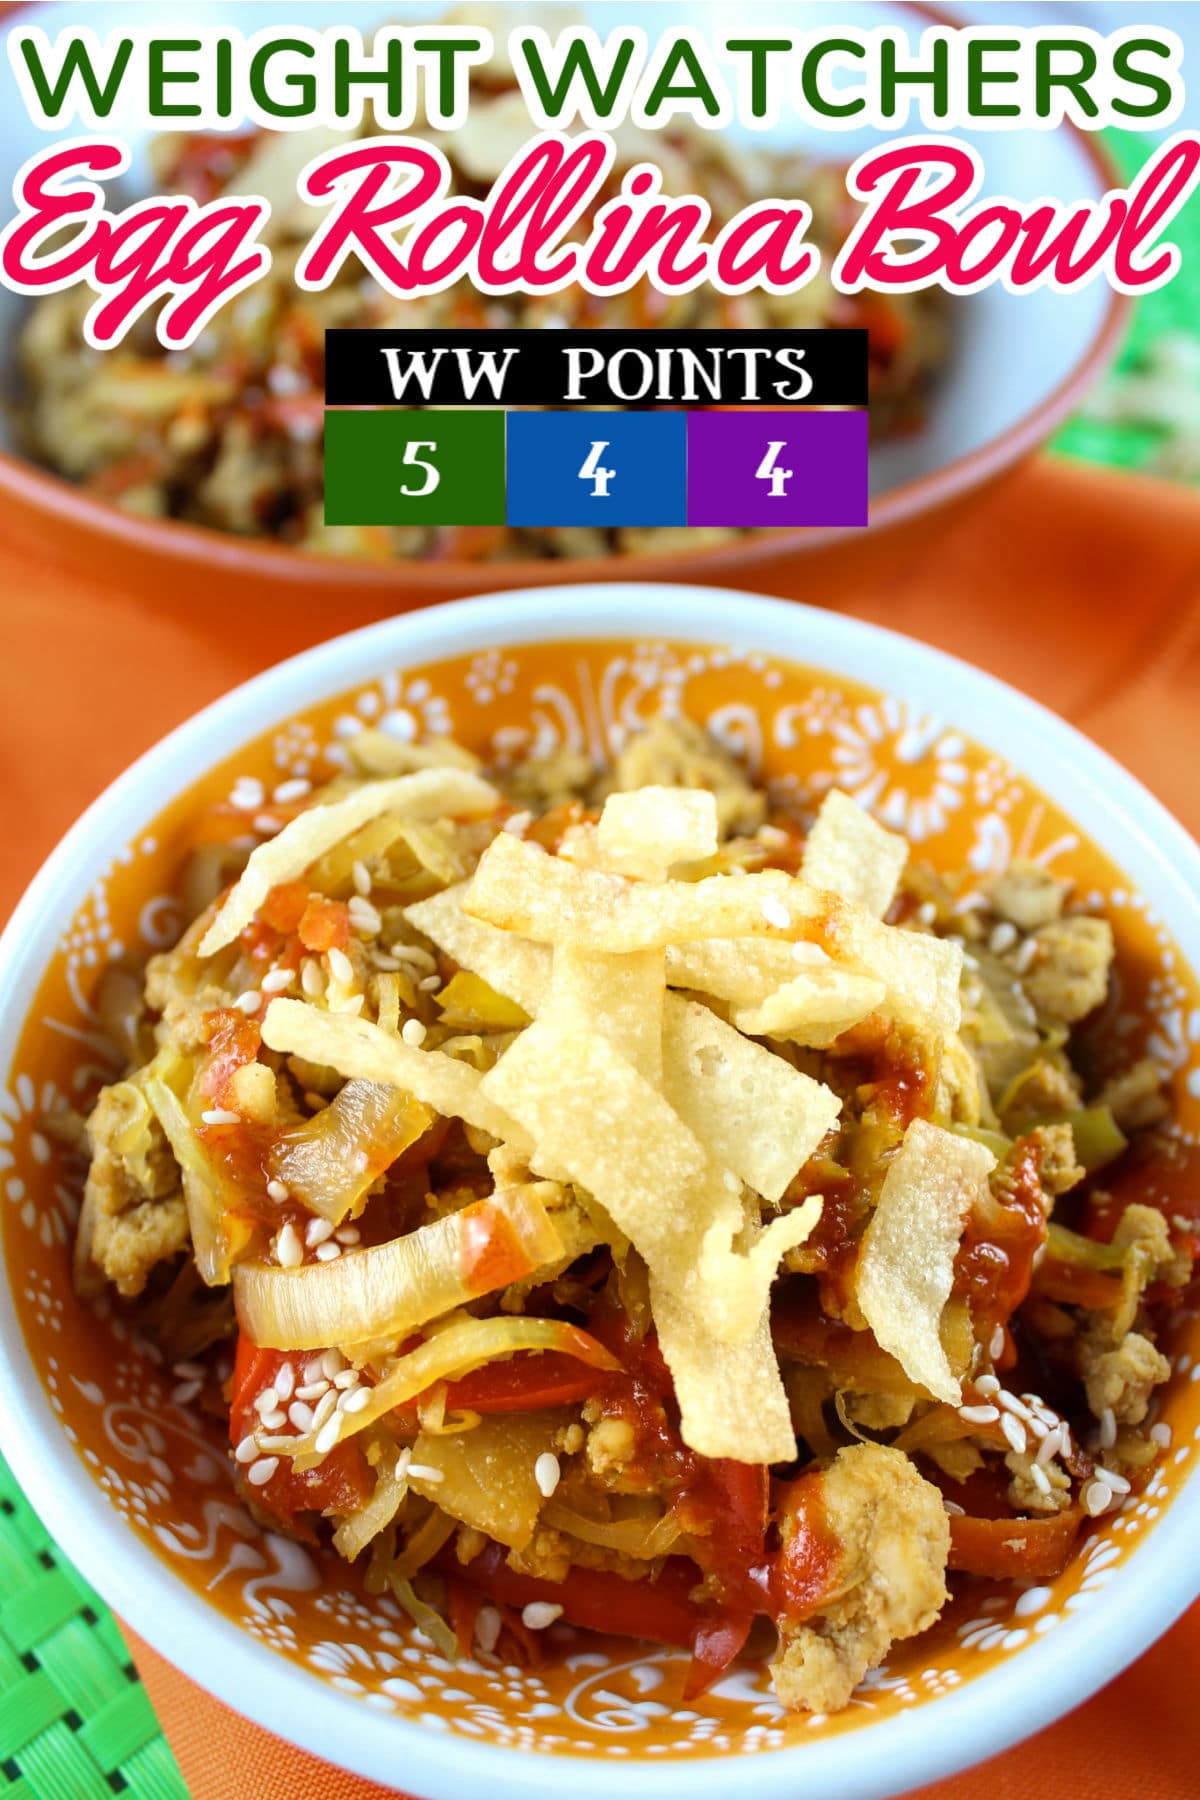 This Egg Roll in a Bowl is a new favorite! It's got all the yum of an egg roll but with so many less calories! These are only 4/5 points on Weight Watchers - which is really great for any lunch or dinner. My favorite part is the crispy wonton pieces on top - it gives that fun crunch just like an egg roll!  via @foodhussy